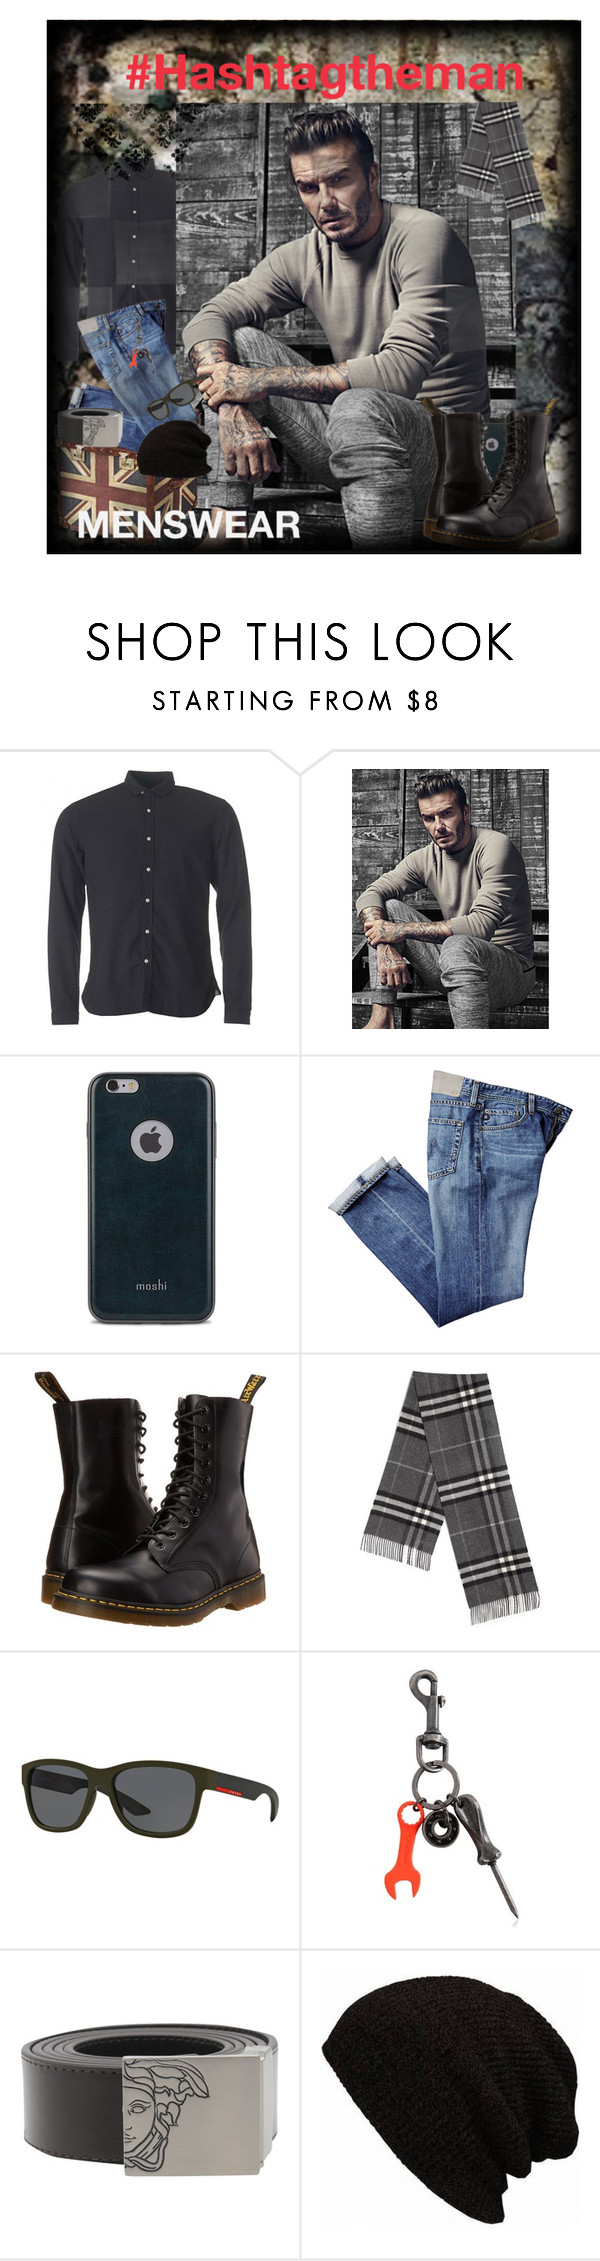 """#13"" by harrietthad ❤ liked on Polyvore featuring Oliver Spencer, Moshi, Dr. Martens, Burberry, Prada Sport, Diesel, Versace, mens, men and men's wear"